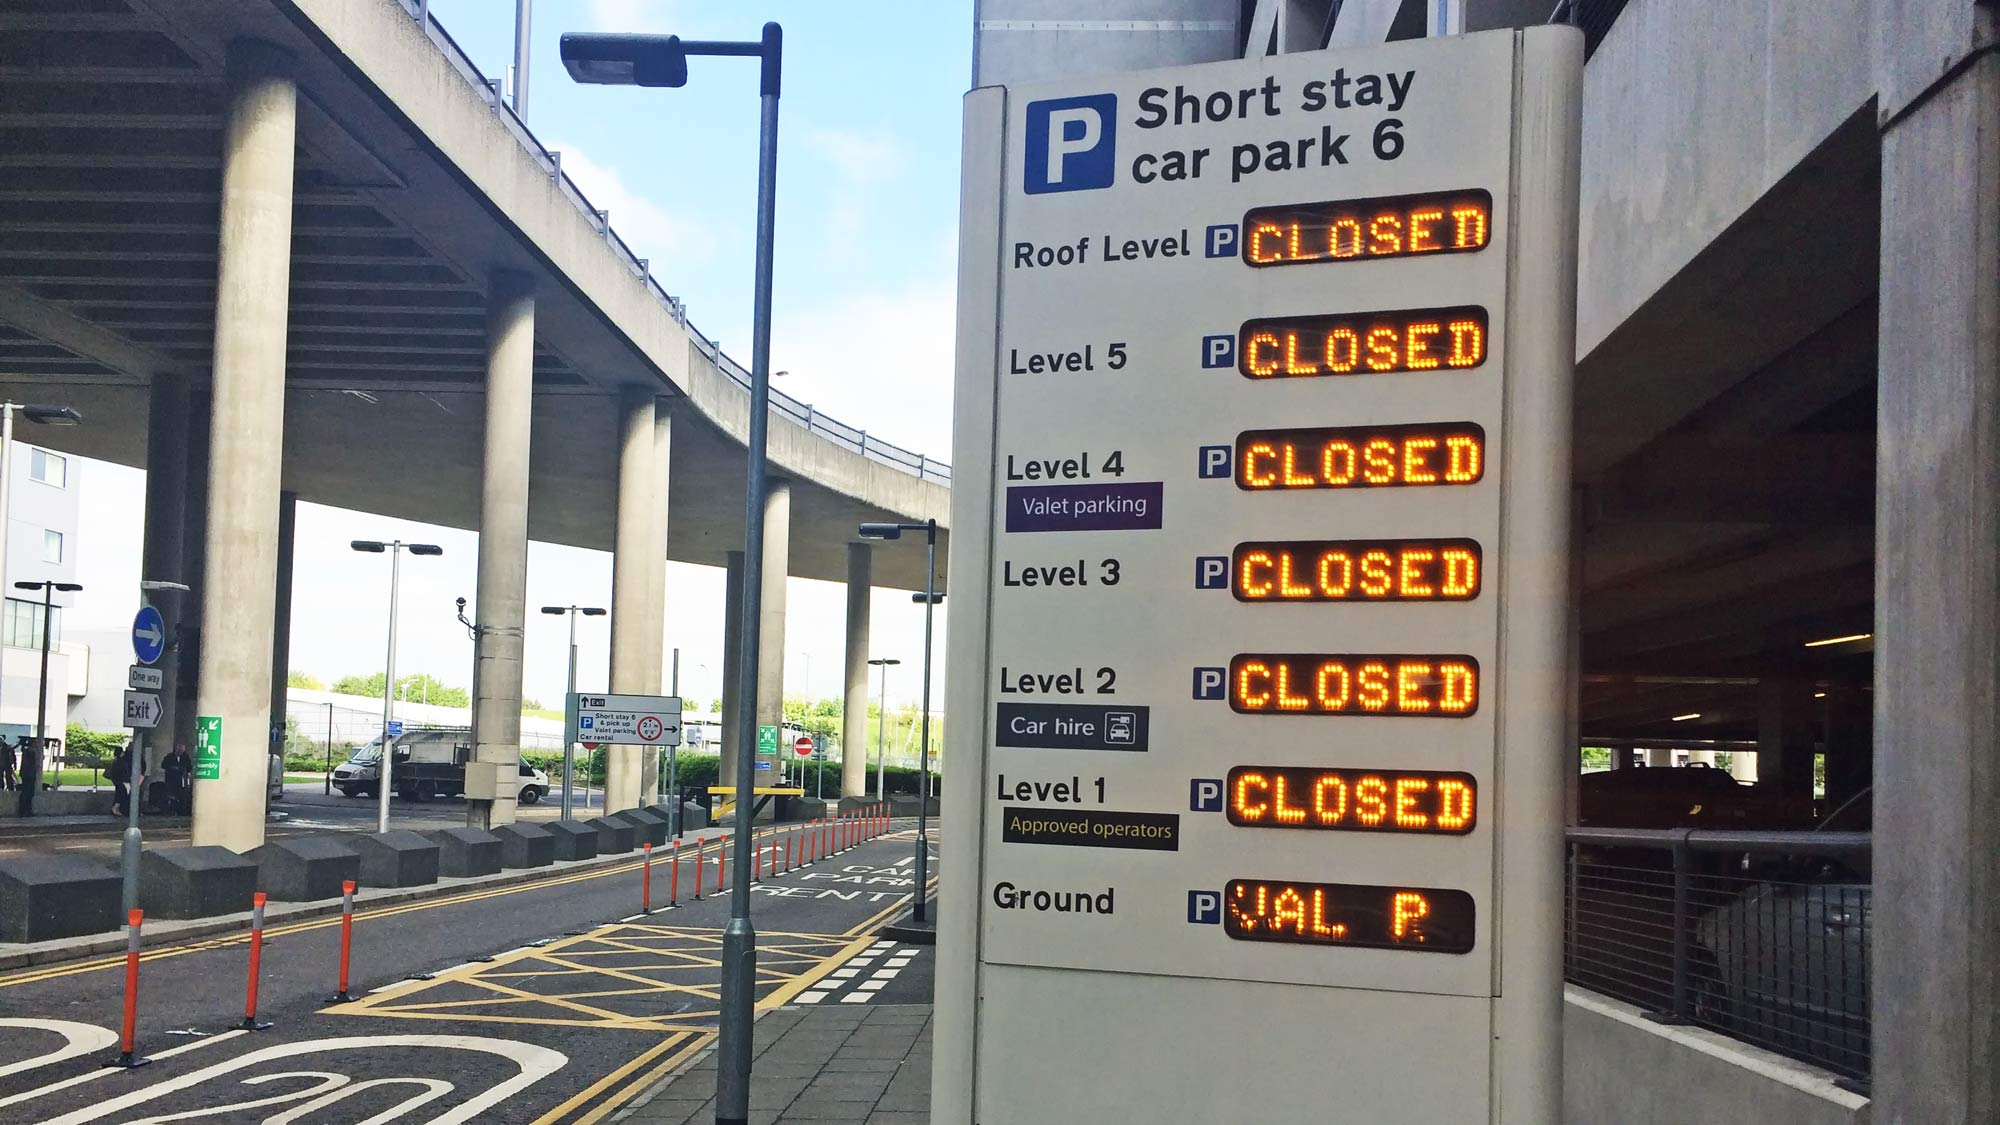 Forecourt delays north terminal gatwick i love meet and greet is warning customers of potential delays at the gatwick airports north terminal forecourt and suggesting customers allow more time m4hsunfo